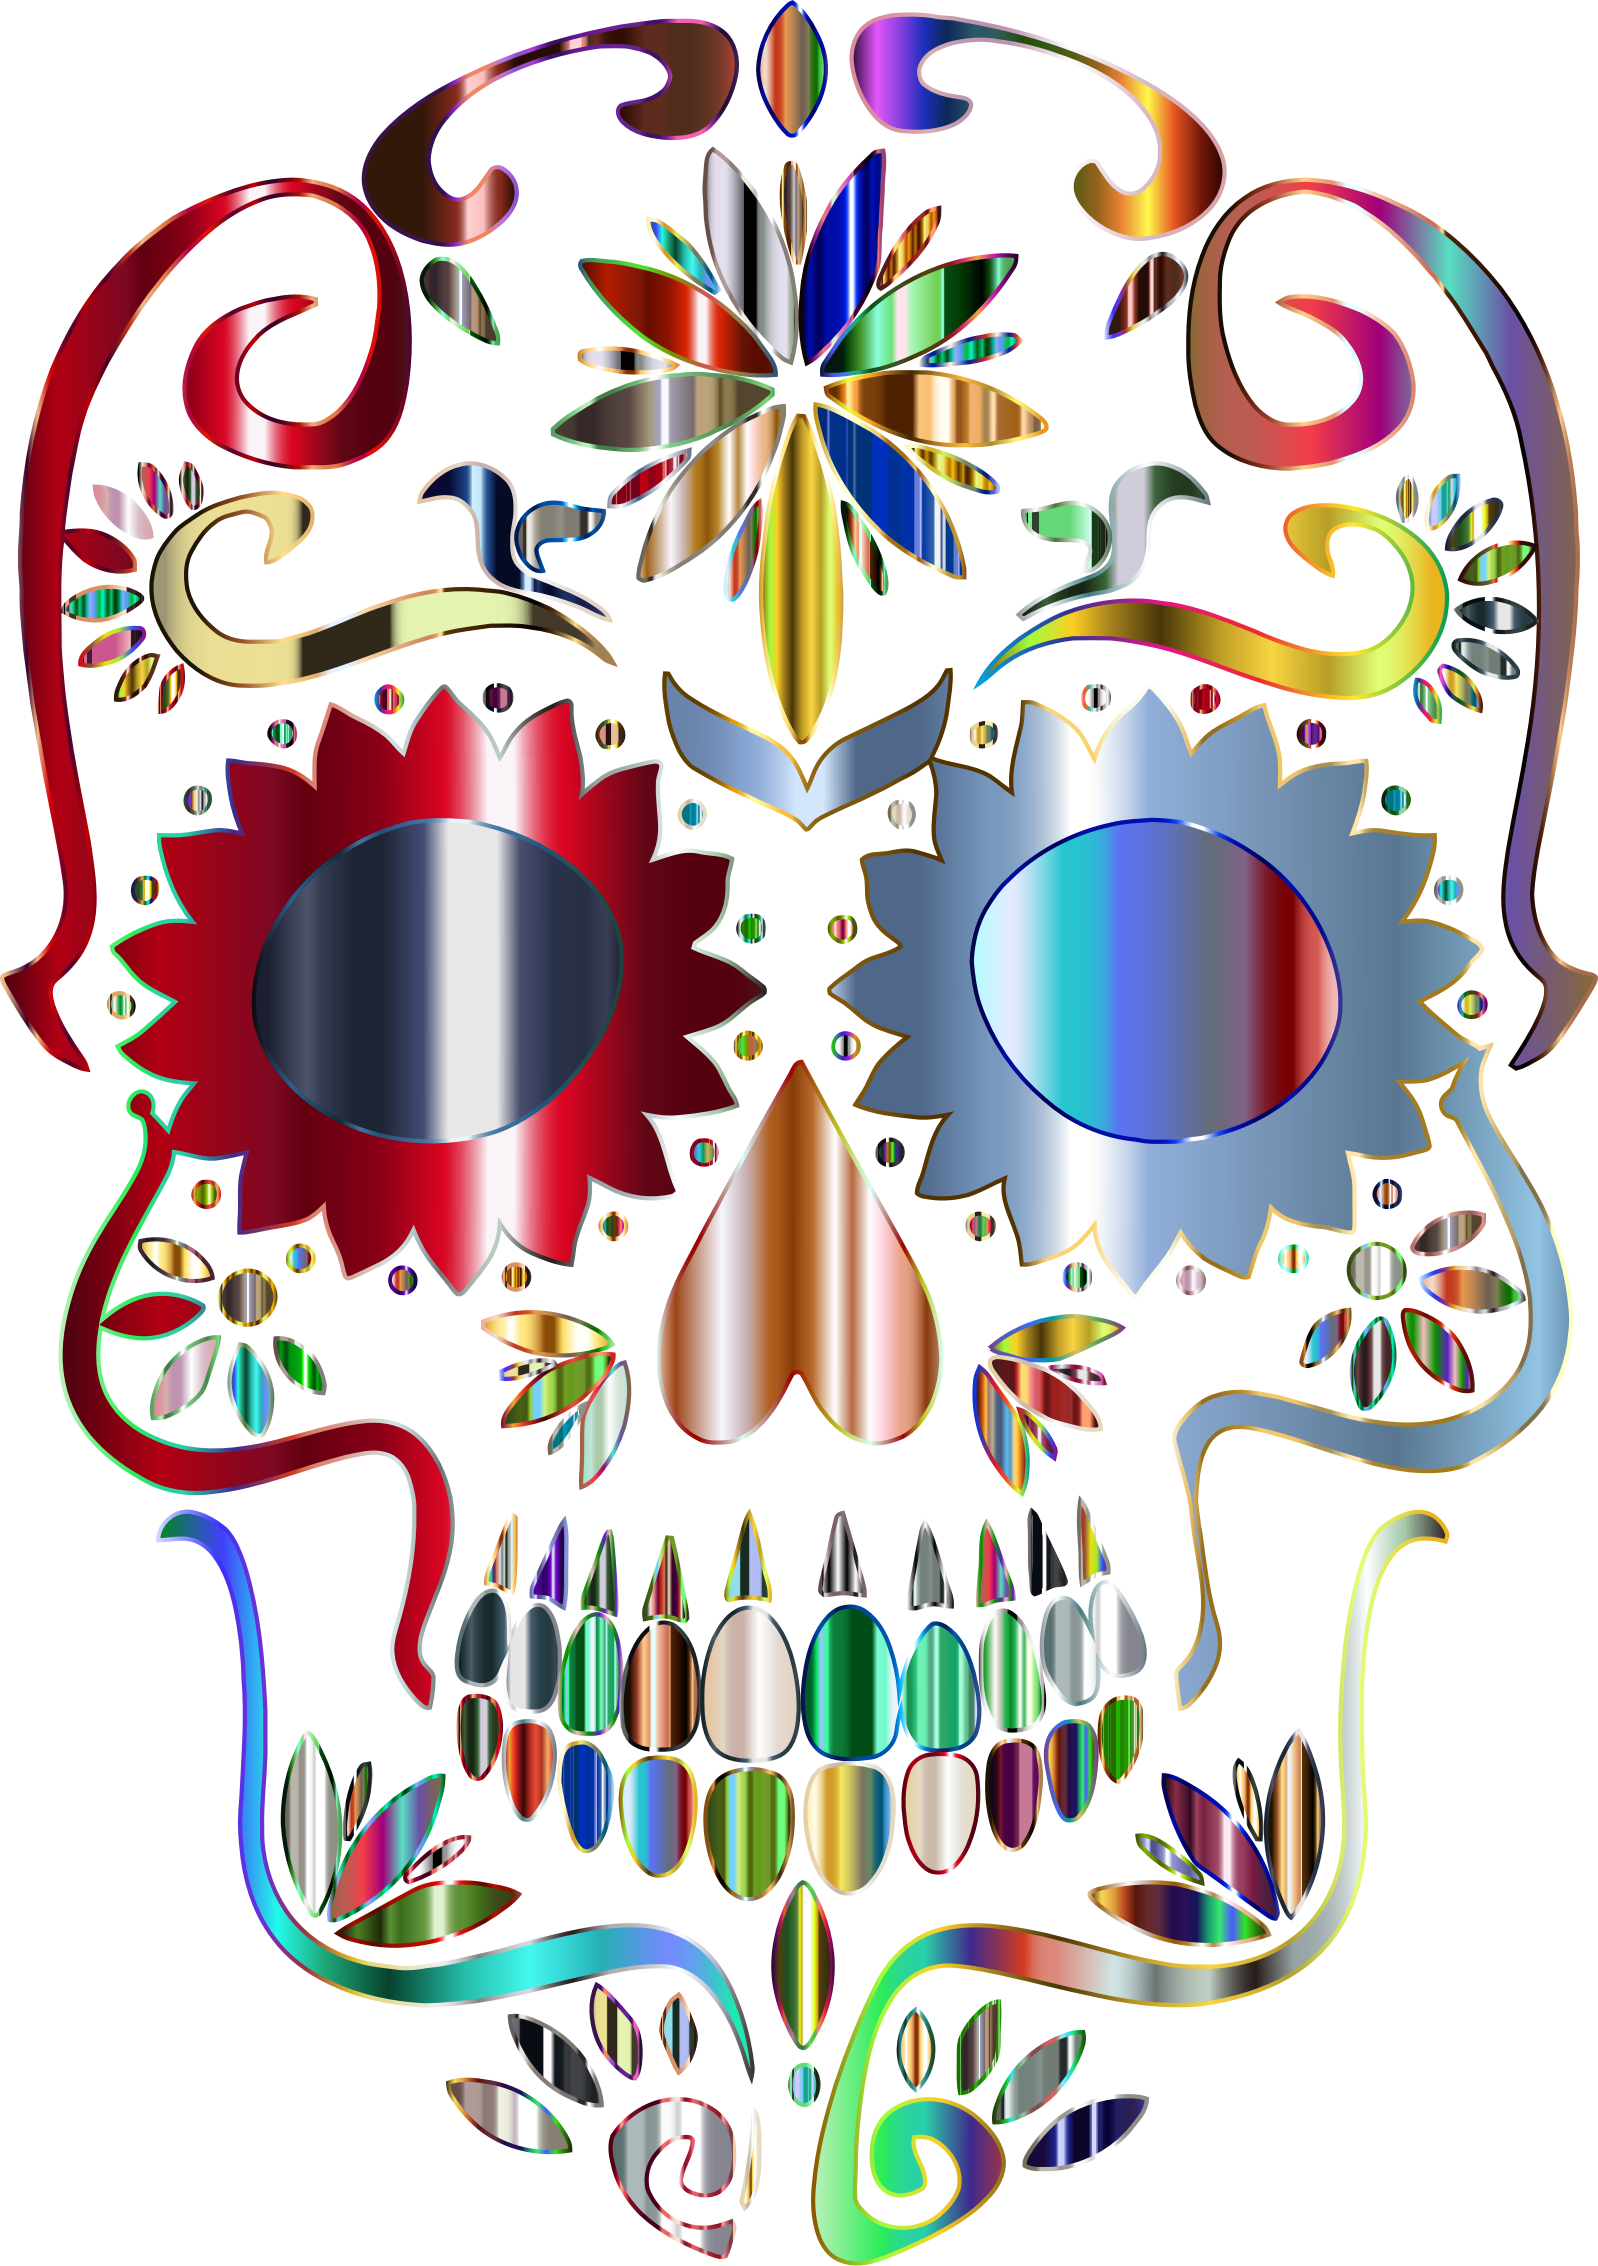 Prismatic Sugar Skull Silhouette 5 No Background by GDJ